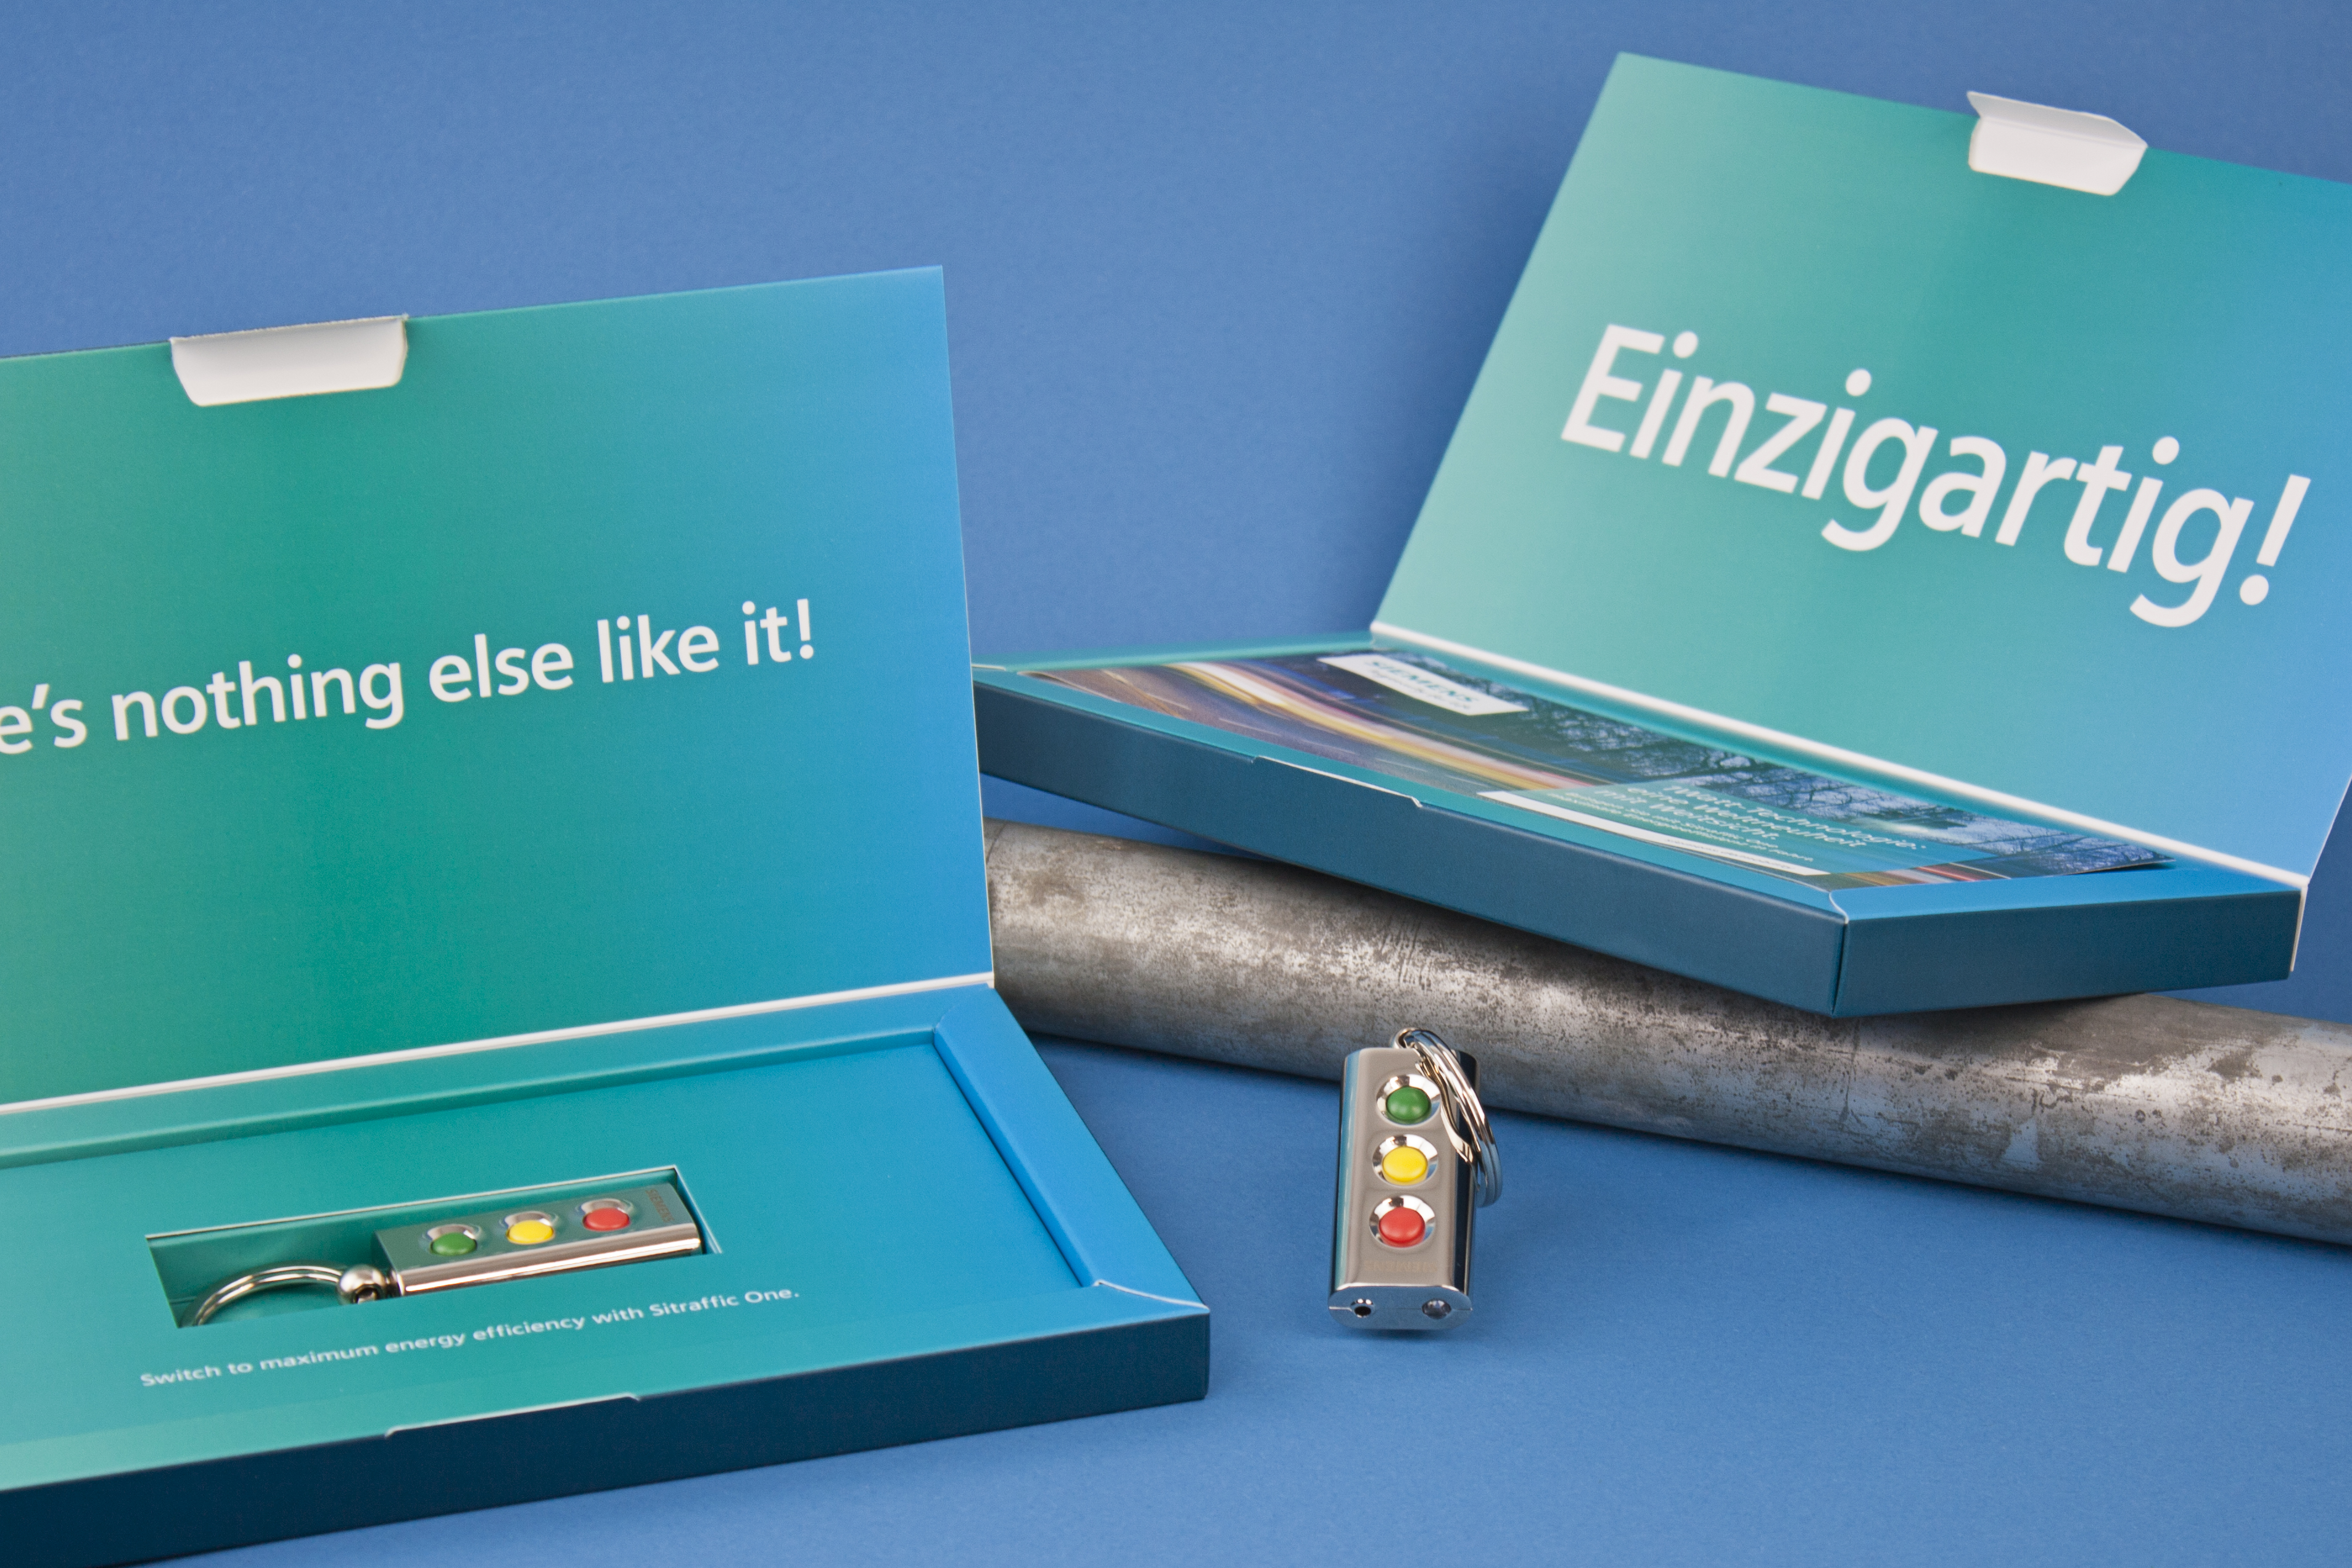 Referenz Siemens Mailing Sitraffic One, Packaging